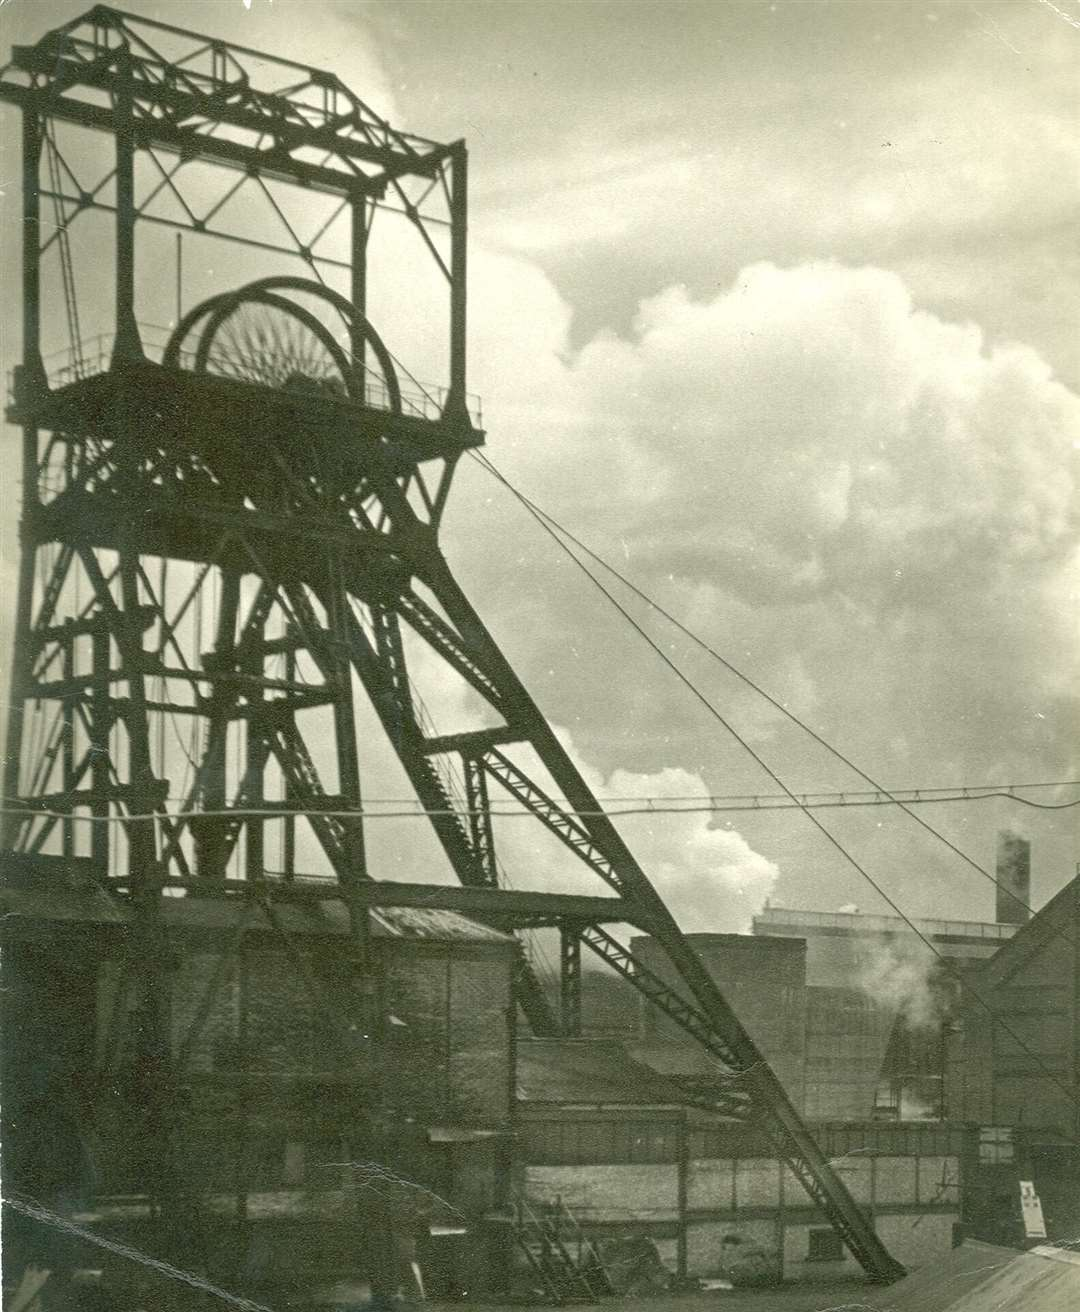 Betteshanger colliery pit head